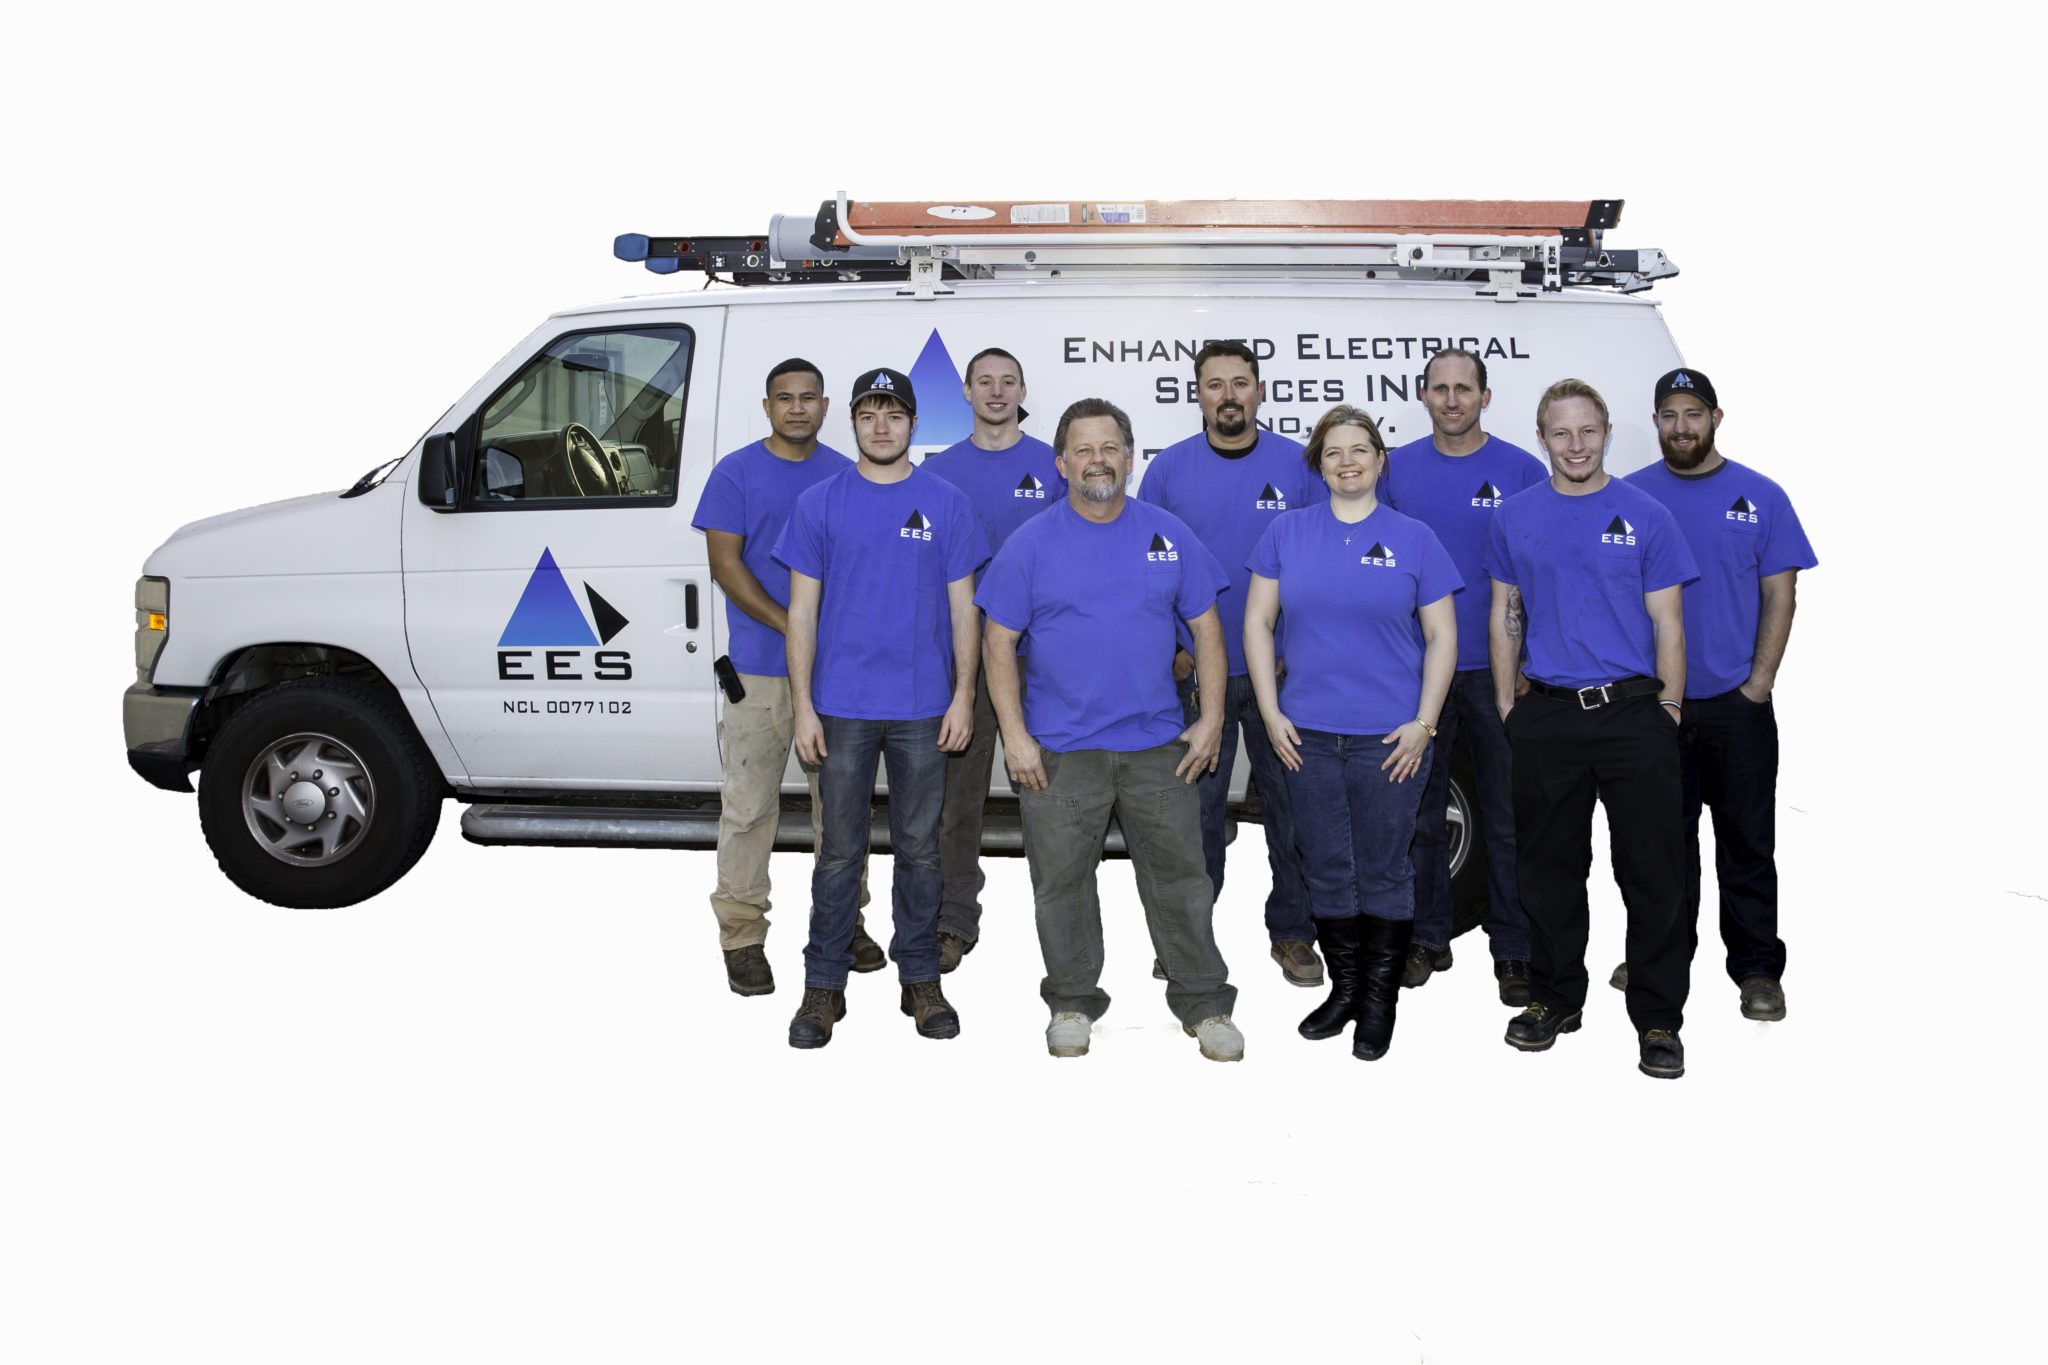 Enhanced Electrical Services Team Portrait